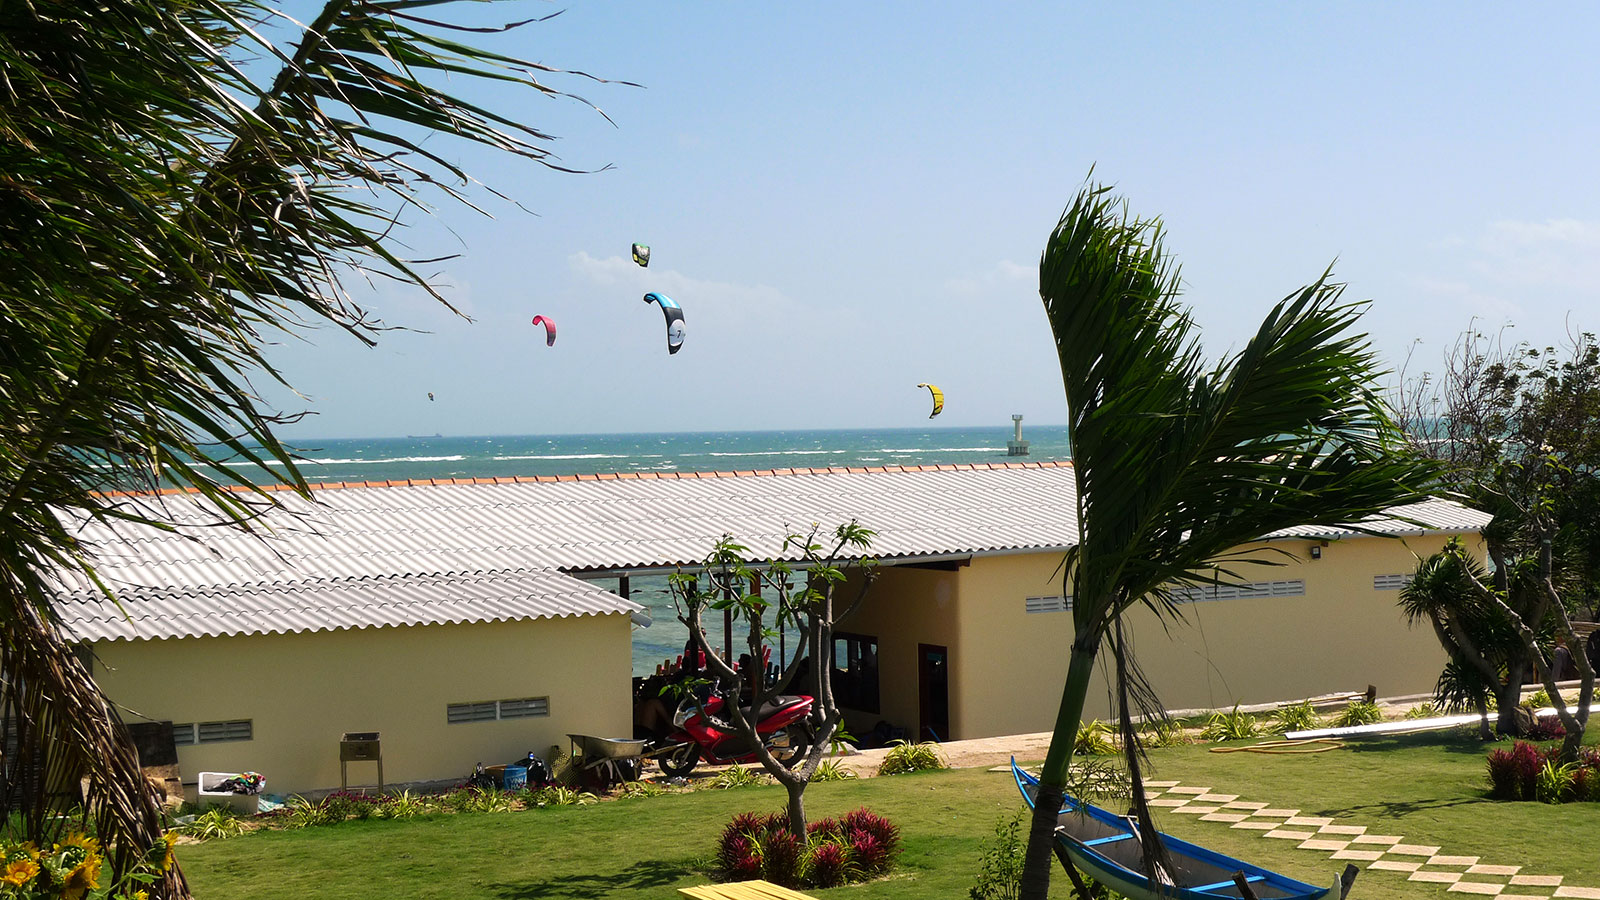 Kitesurf accommodation at My Hoaxing lagoon, Phan Rang.